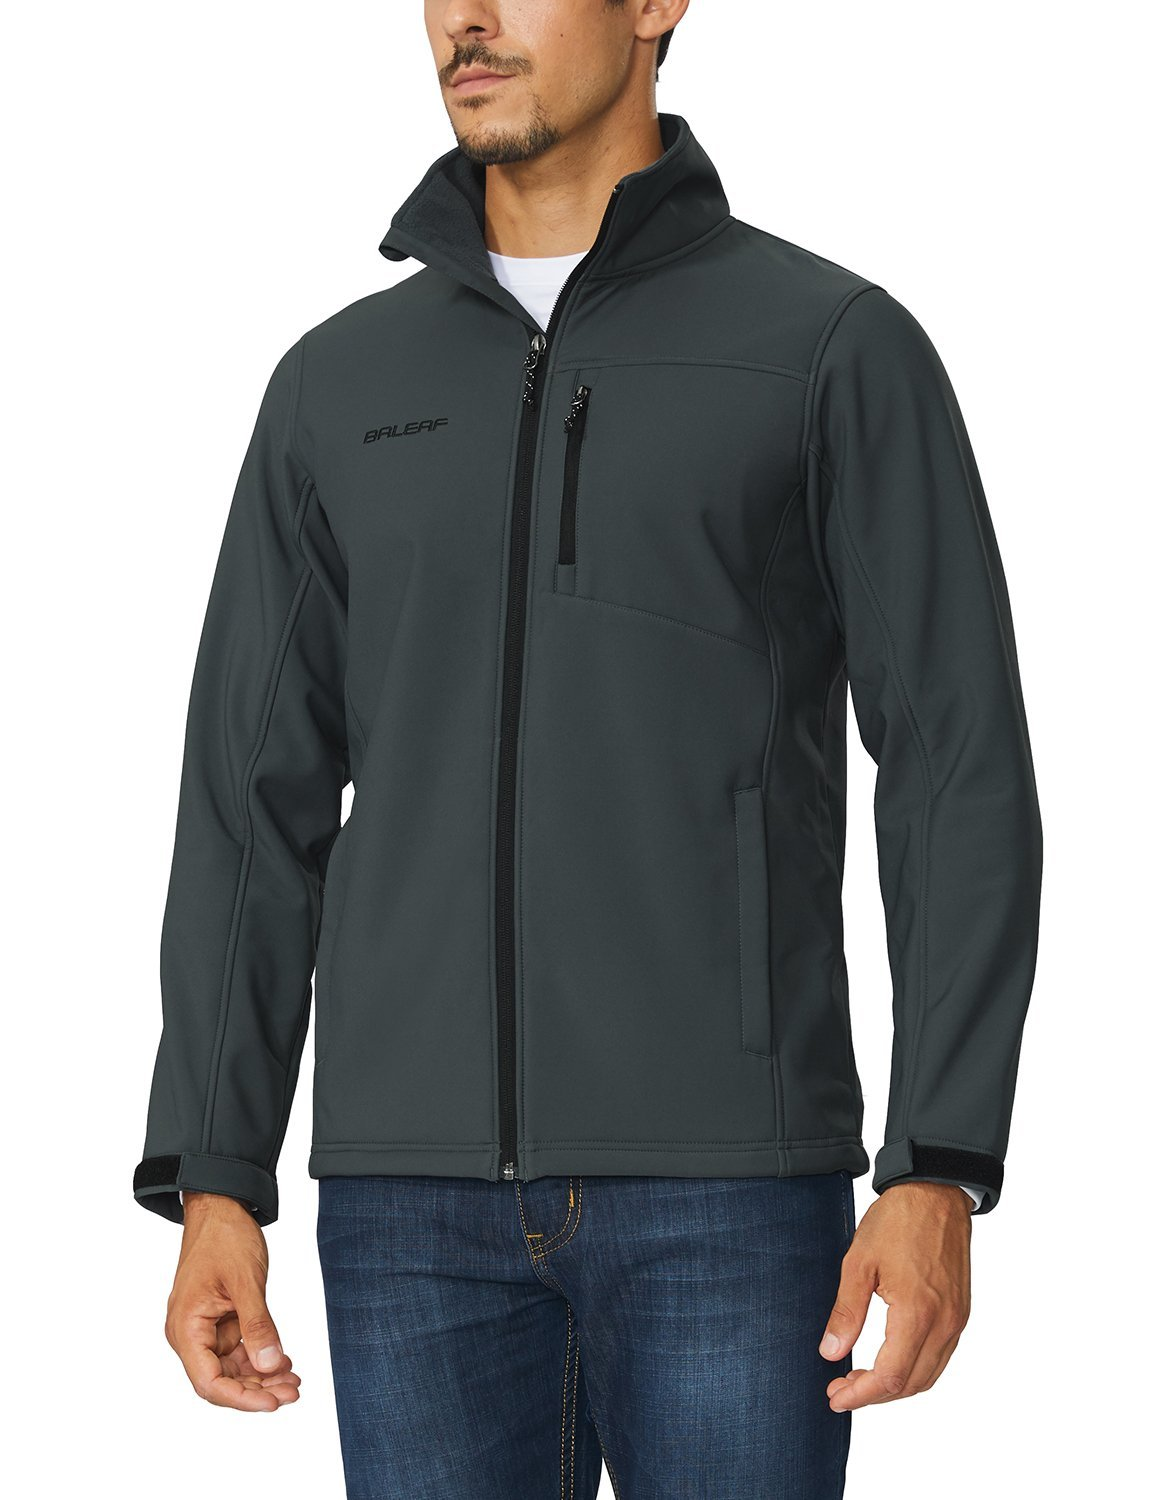 Baleaf Men's Waterproof Windproof Outdoor Softshell Jacket Microfleece Lined Gray Size M by Baleaf